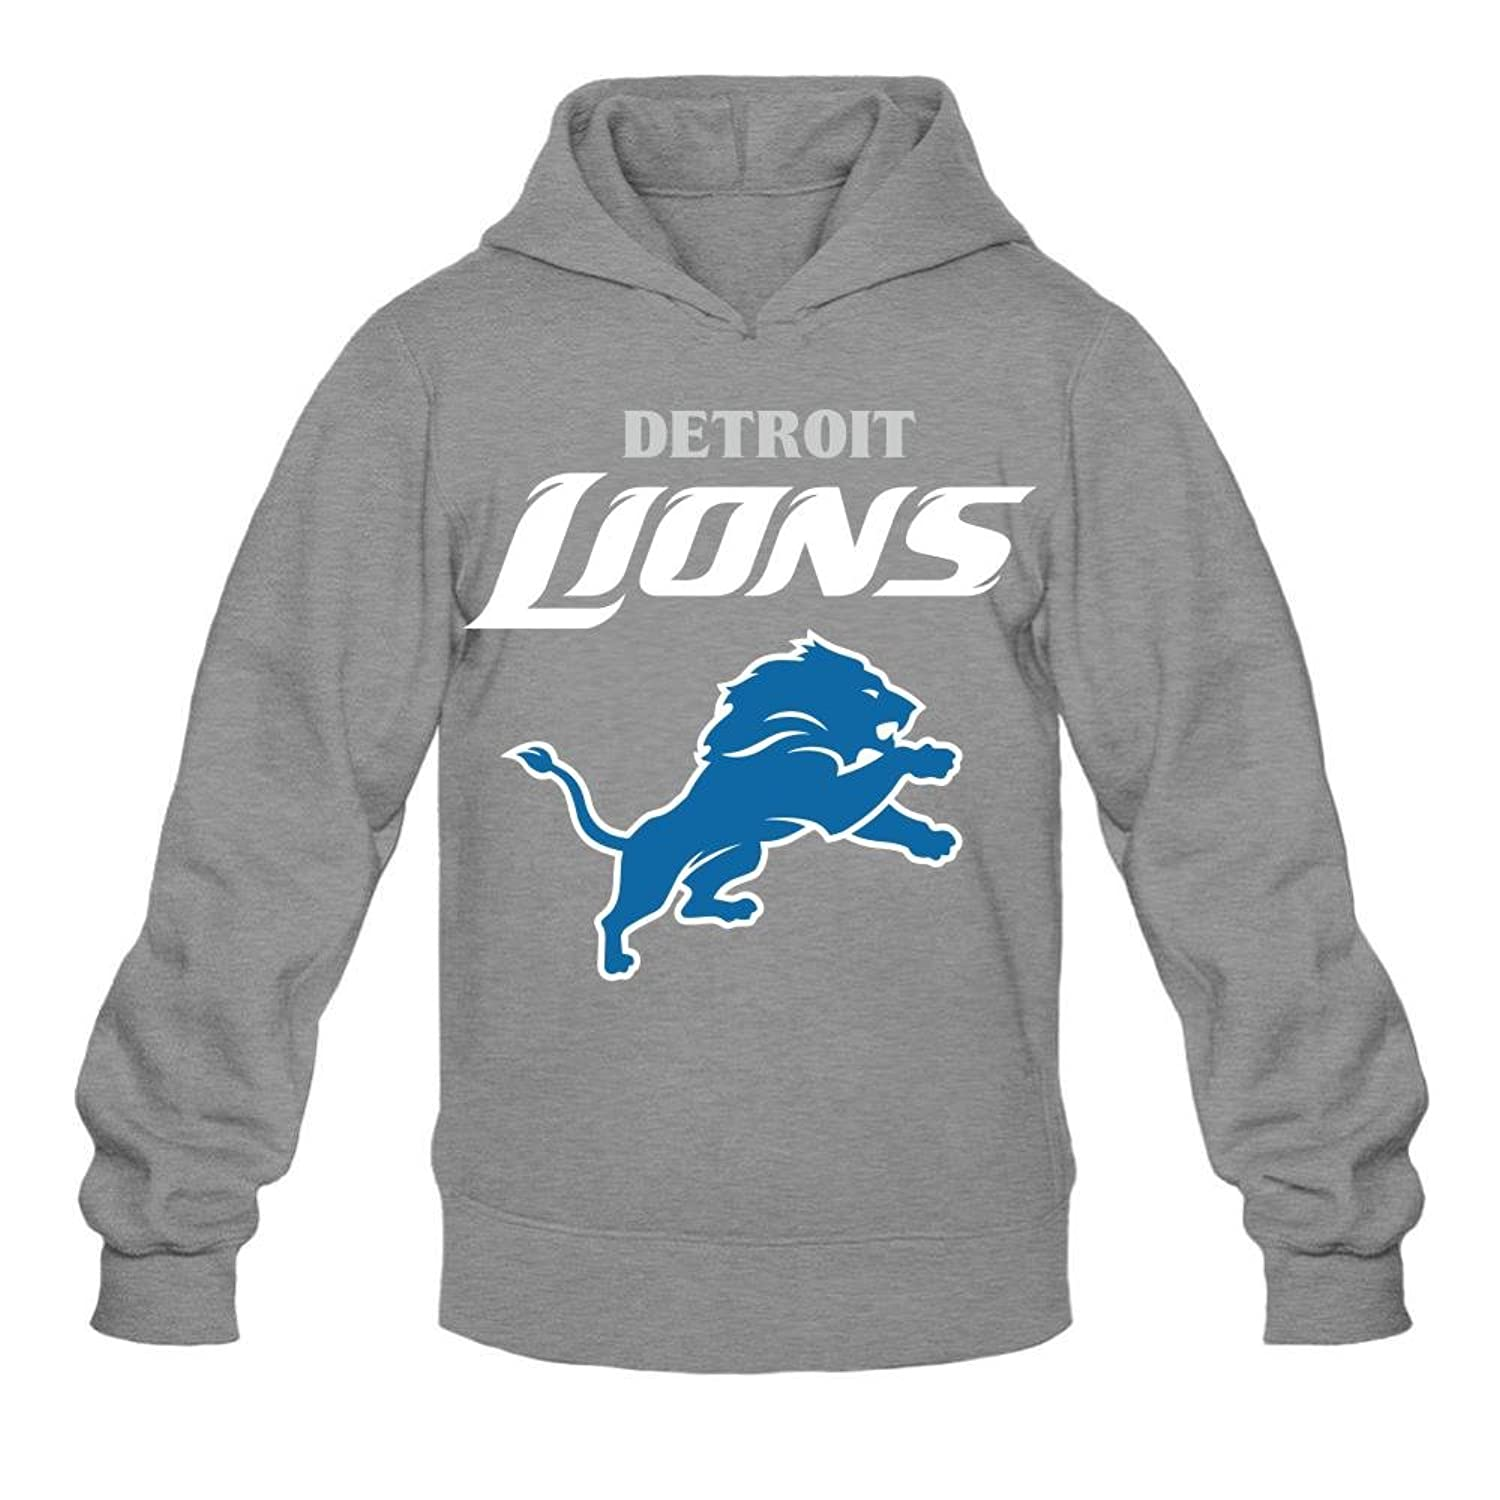 70%OFF Detroit American Football Lions Men's Hoody long sleeved sweater customized design